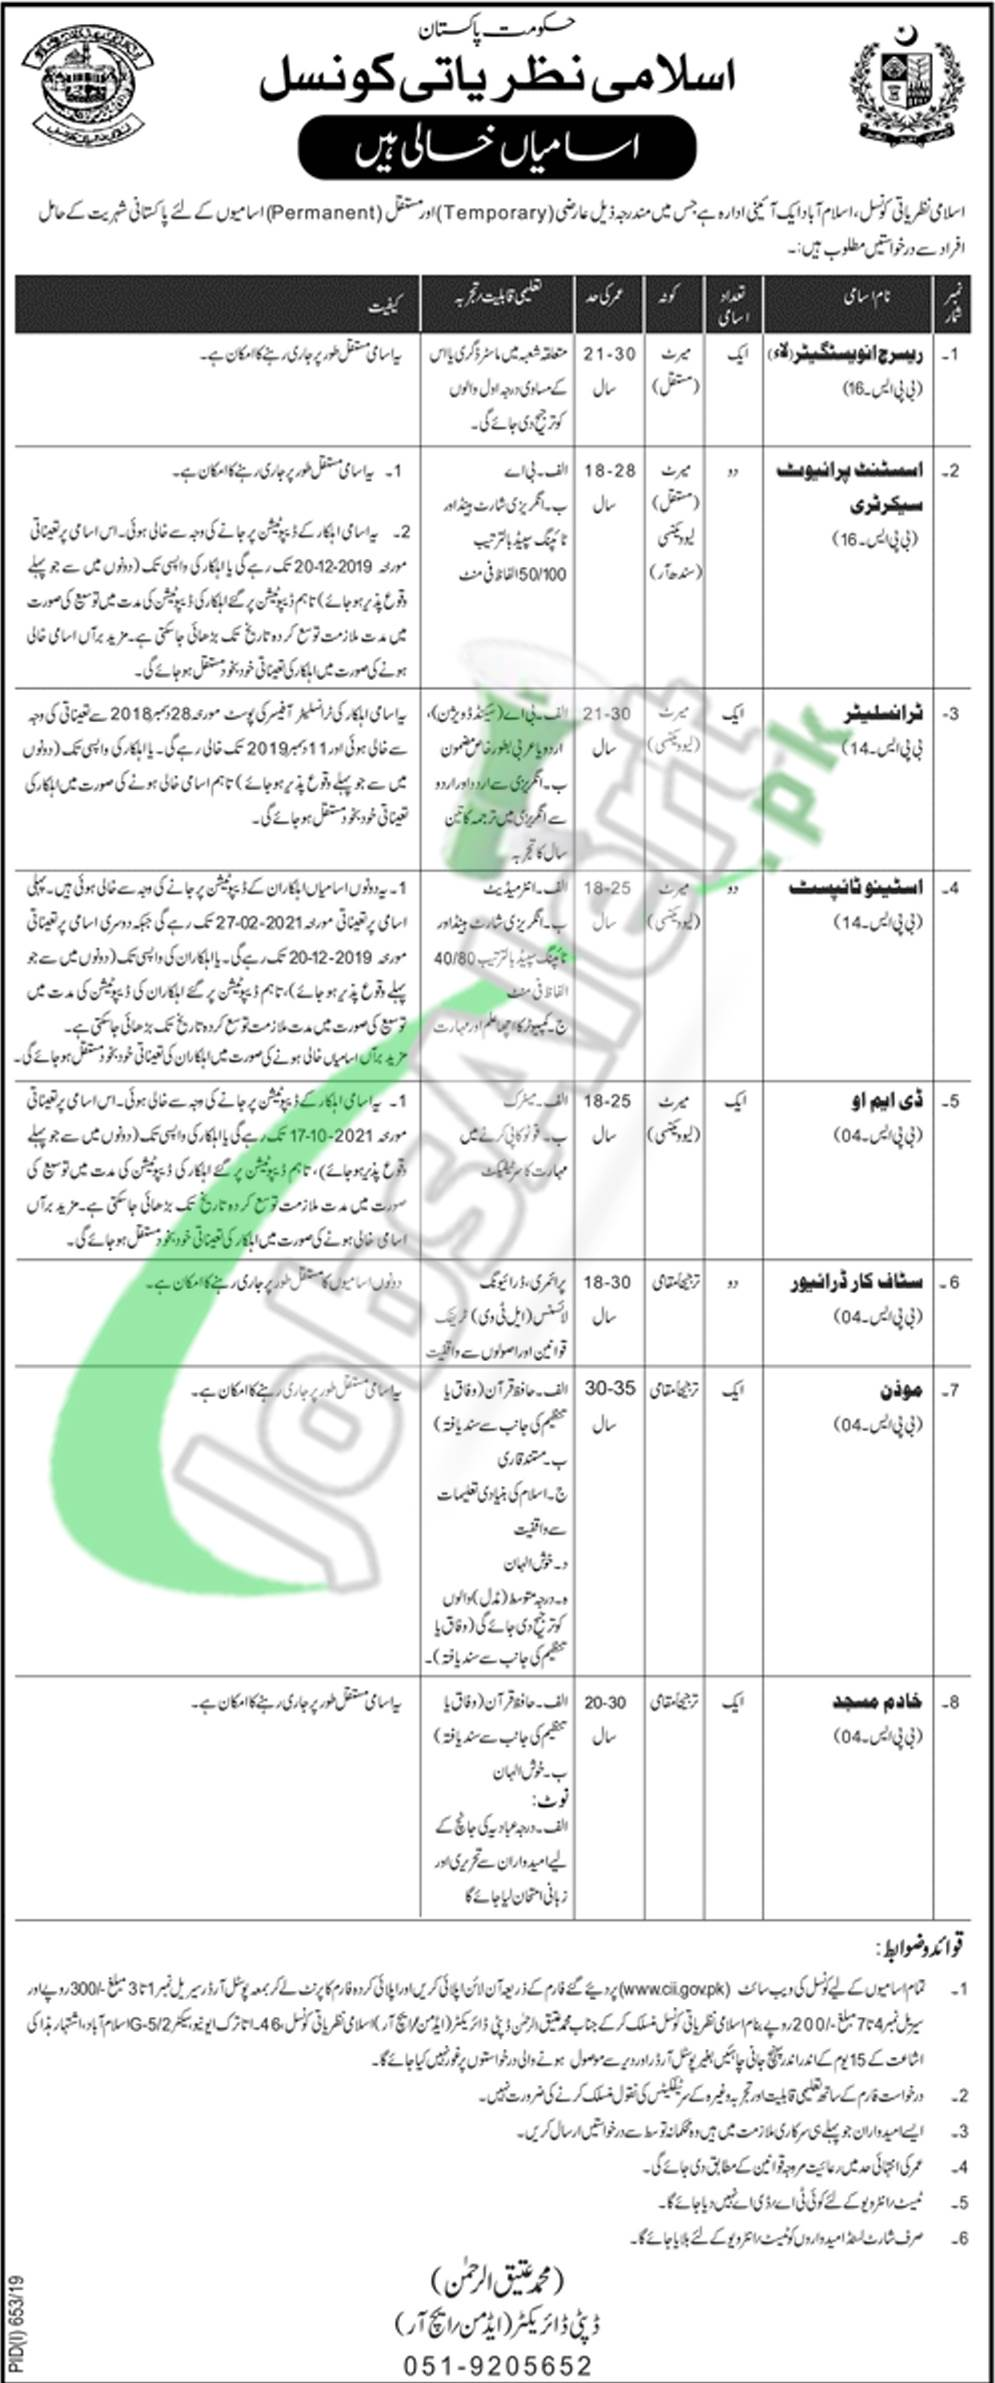 Council of Islamic Ideology Pakistan Jobs